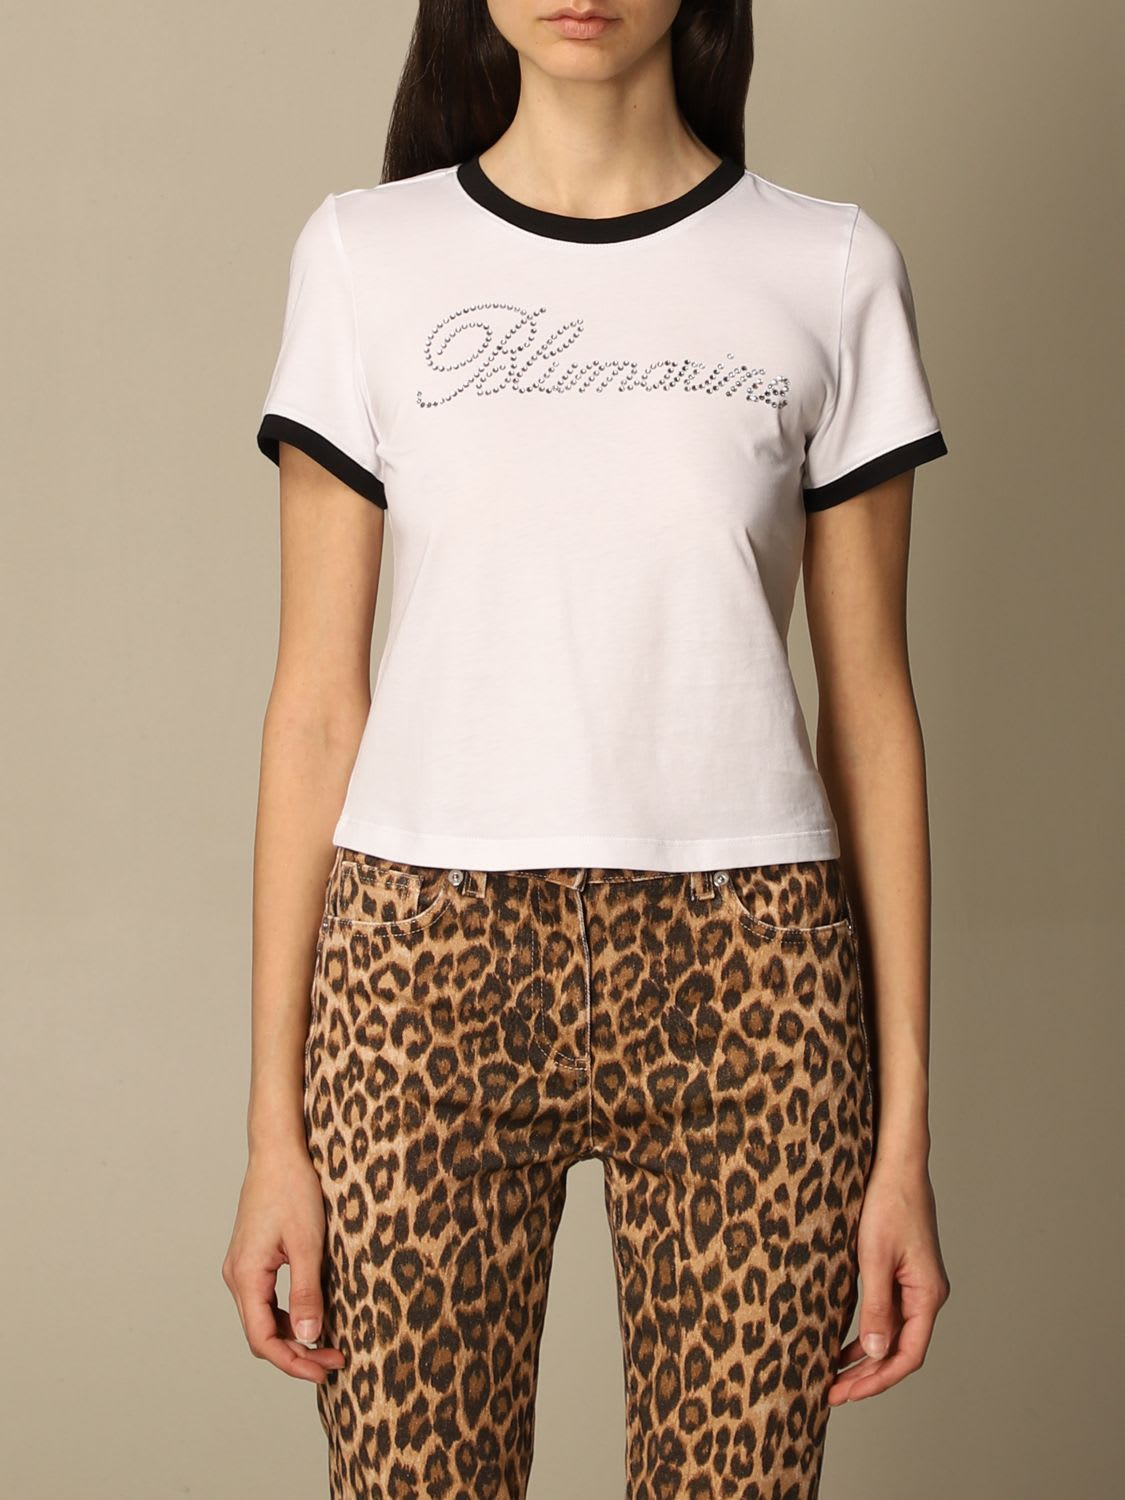 Blumarine T-shirt Blumarine Cotton T-shirt With Rhinestone Logo